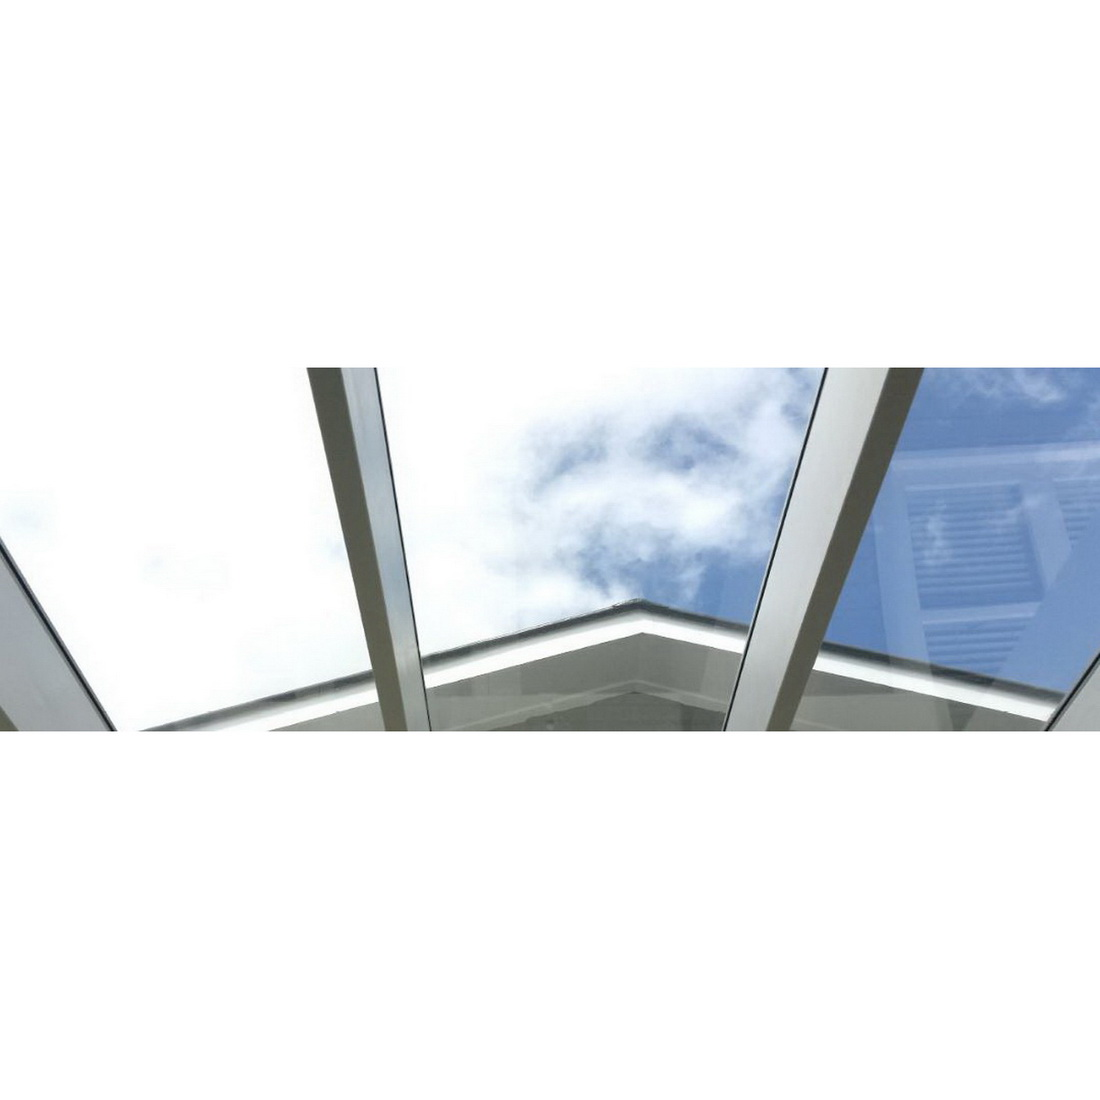 CLEARVUE Roofing Panel 3700 x 586 x 6mm Grey CLV-06.0-GRY-3700X7